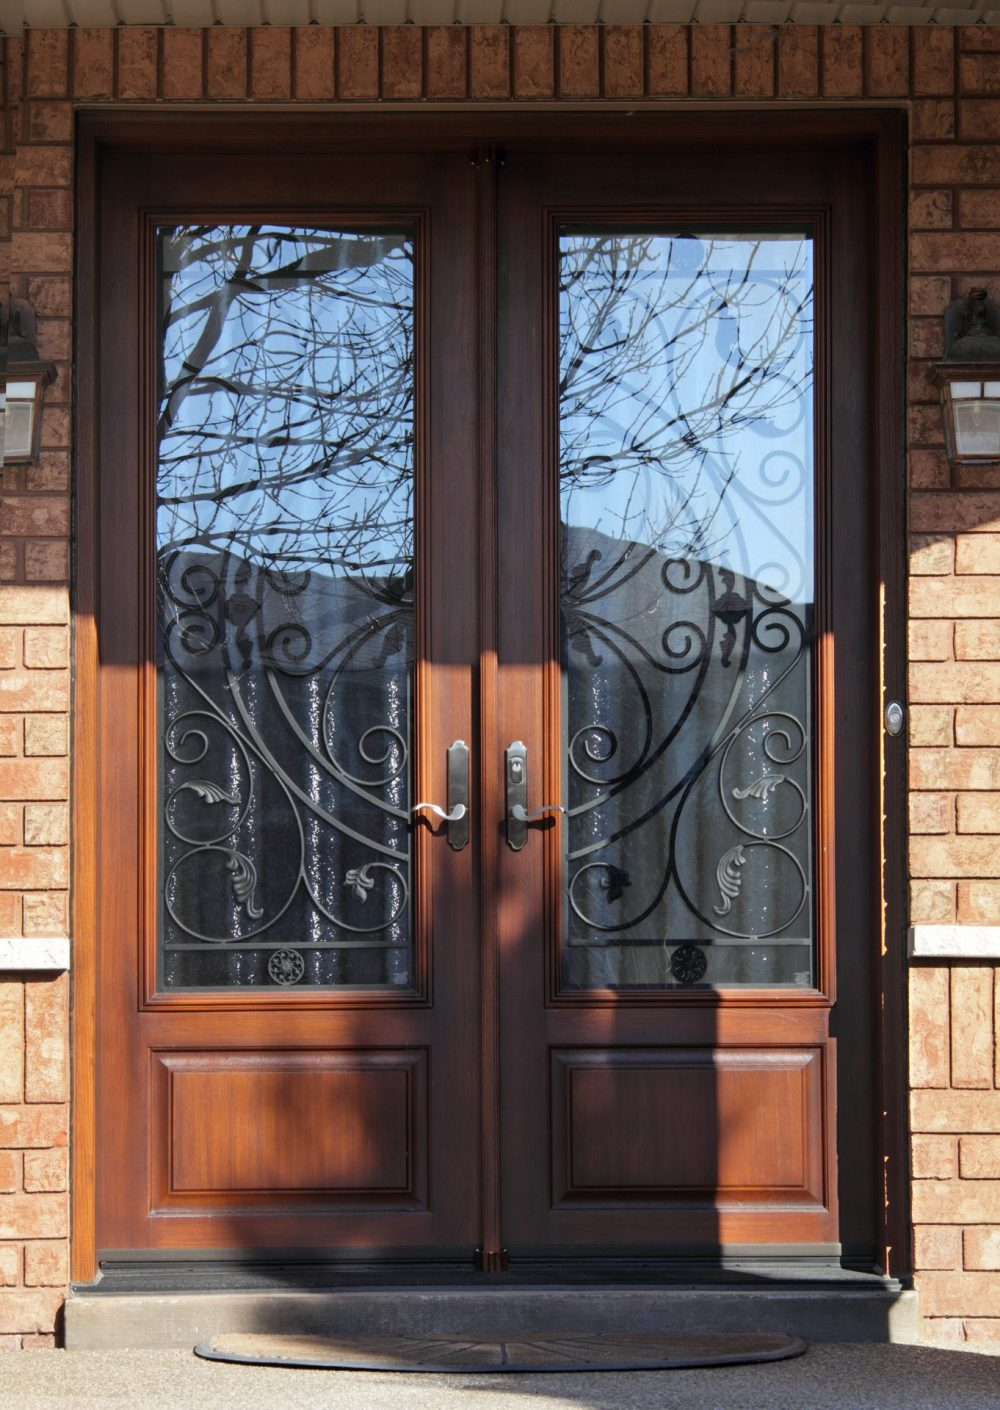 fiberglass door system 8 foot double doors with rustic cherry stain and custom wrought iron design